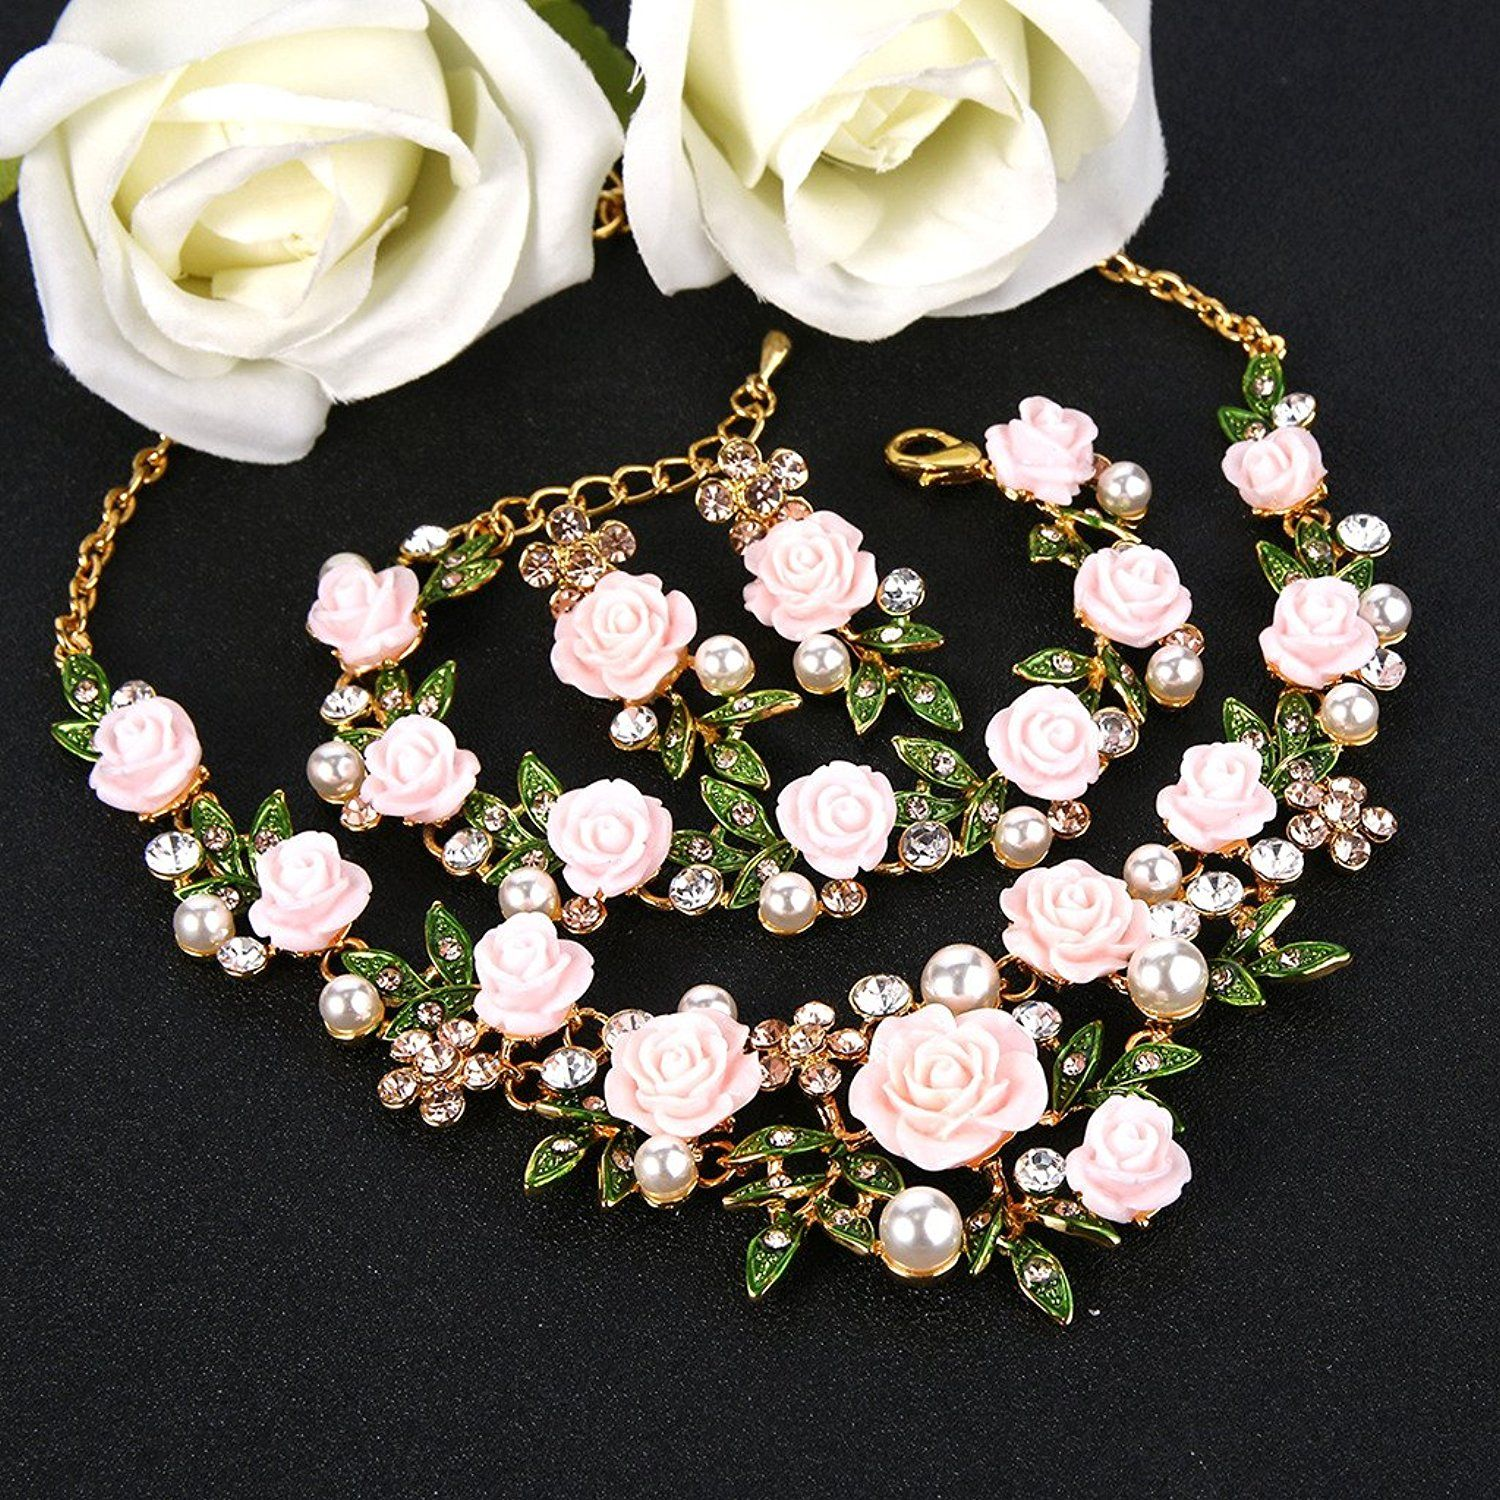 EVER FAITH Women's Austrian Crystal Simulated Pearl Rose Flower Leaf Necklace Earrings Set LX0Uvq